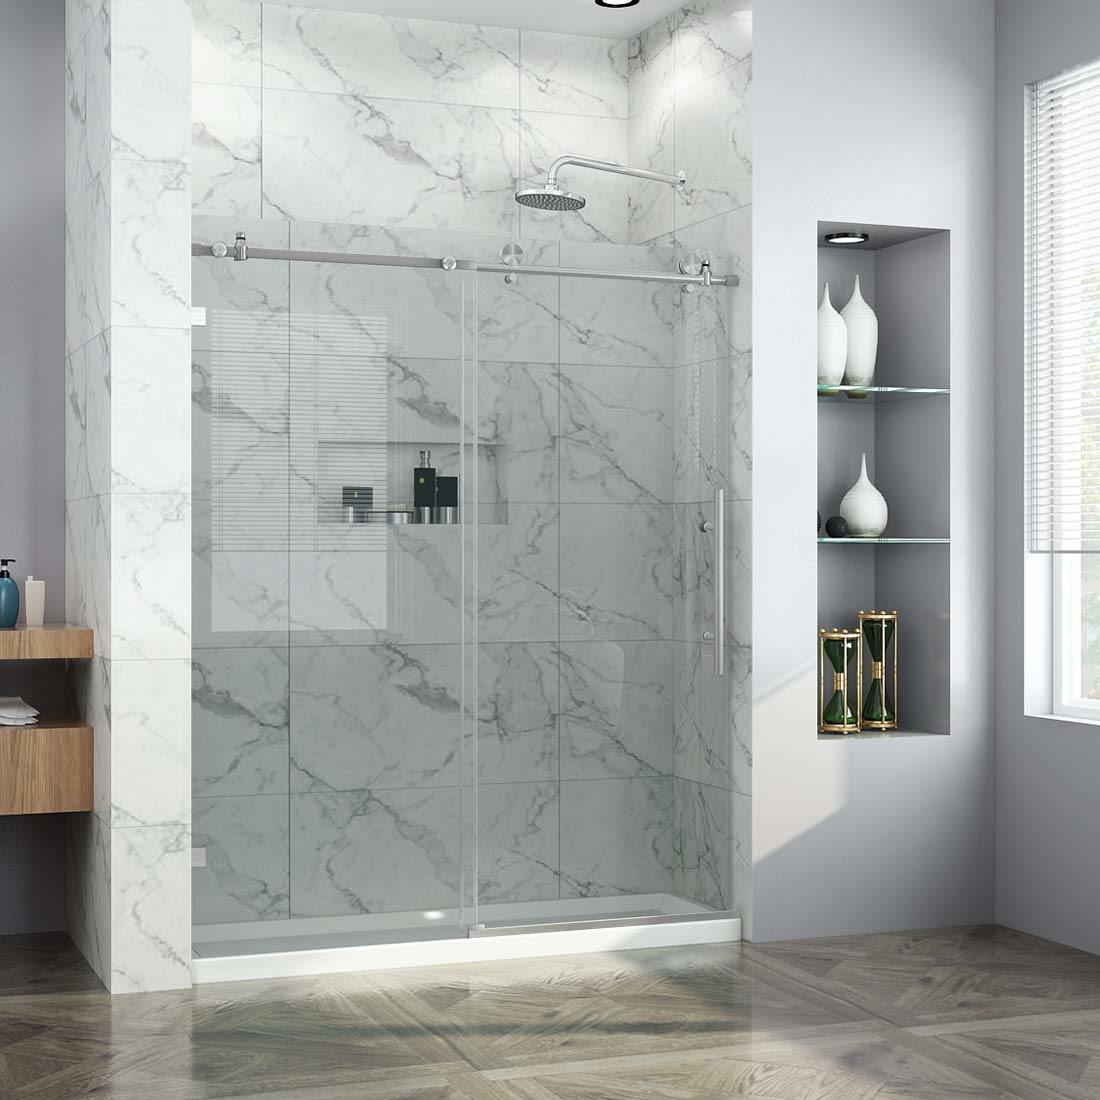 Hot Item Sally Bathrooms Frameless Sliding Door For Shower Enclosure 10mm Thickness Transparent Safety Glass Solid Top Rail Rollers And Double